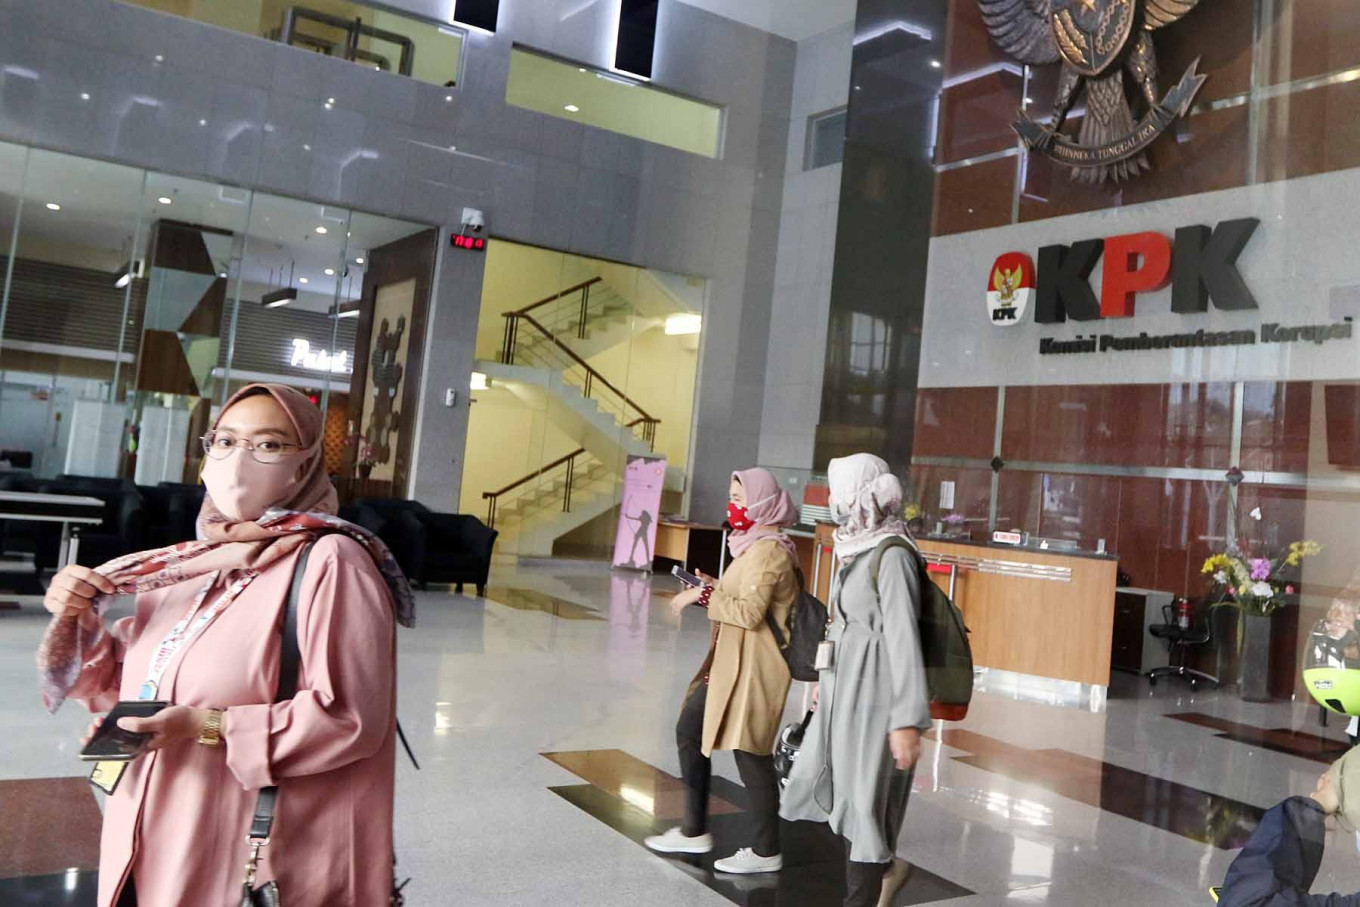 Employees of the Corruption Eradication Commission (KPK) depart from their office on Aug. 12. The government has decided to change the status of KPK employees to civil servants despite criticisms that the status change would undermine the antigraft body's independence.